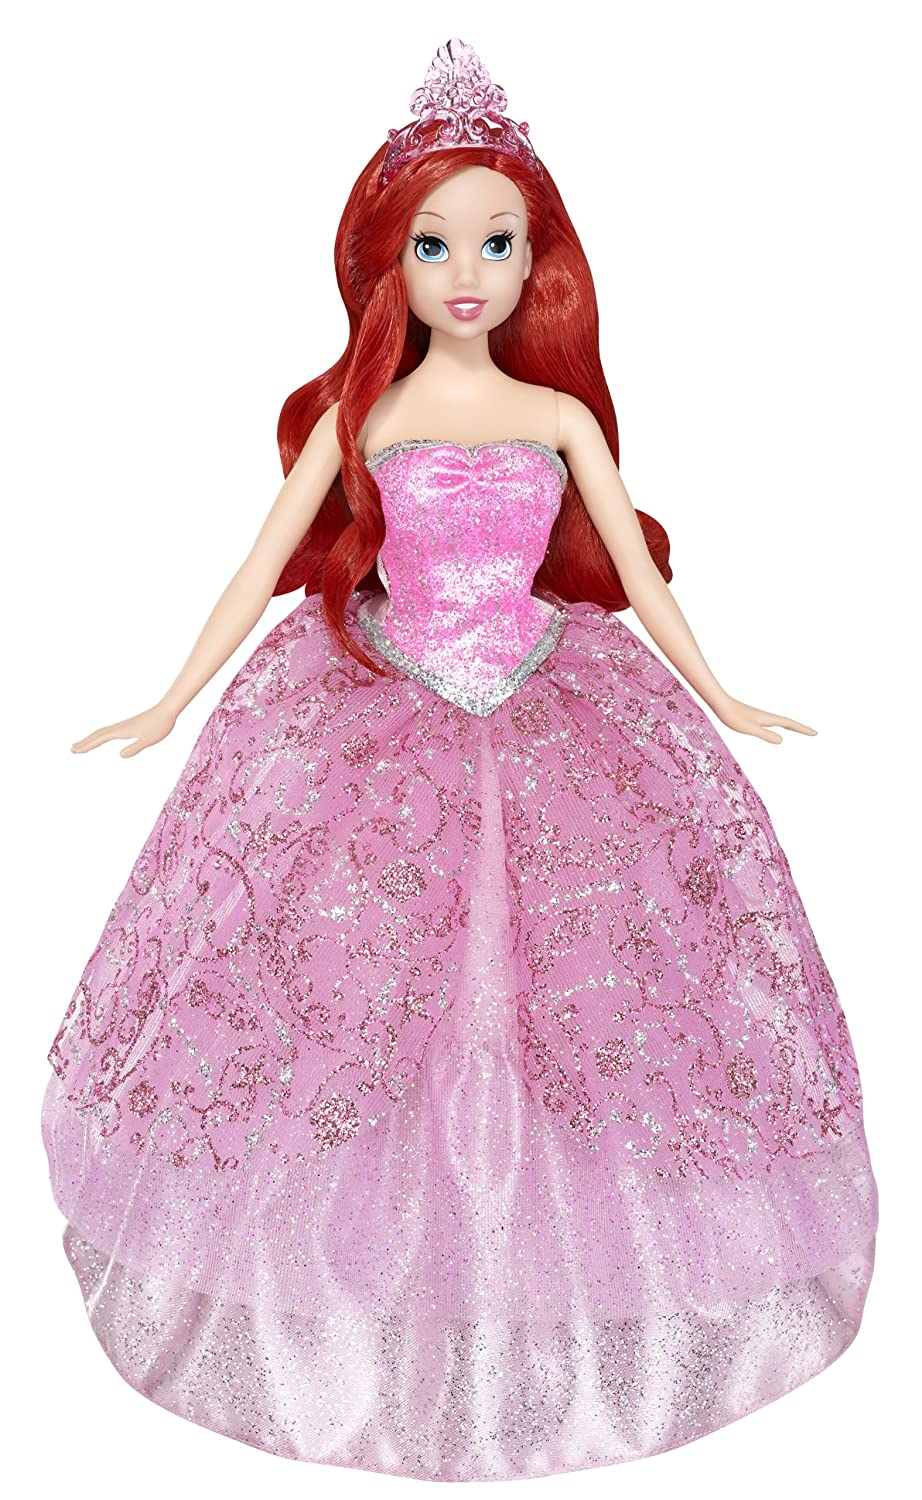 Amazon.com: Mattel Disney Princess 2-In-1 Ballgown Surprise Ariel ...